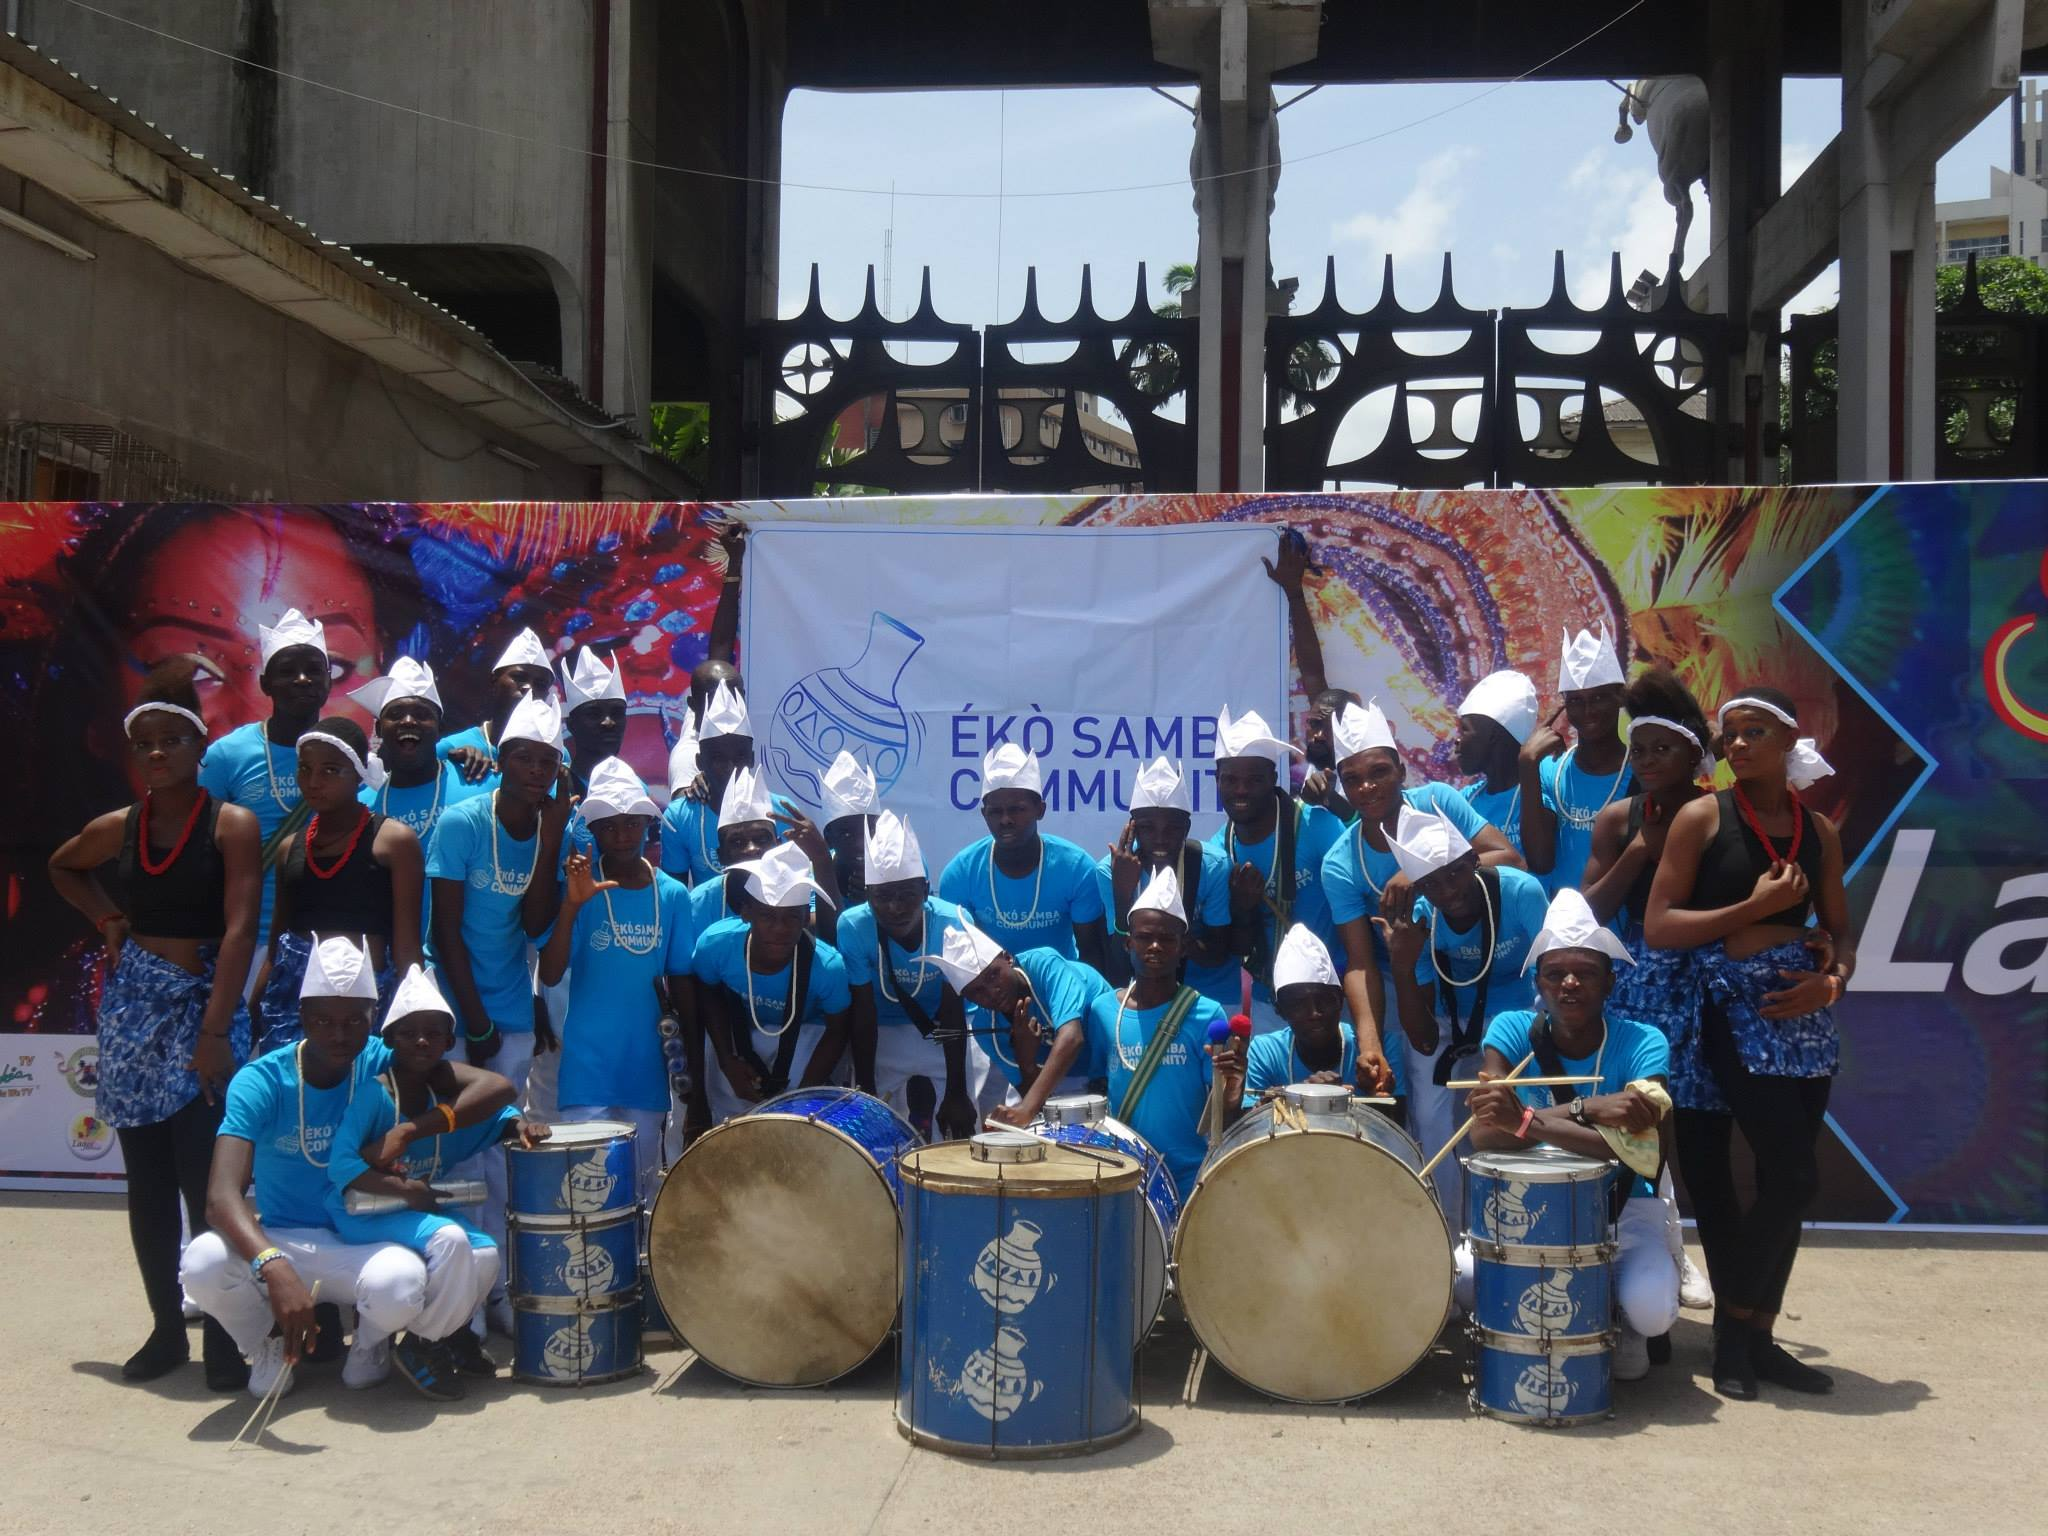 Our drummers and dancers brought true Brazilian flare and spirit to the event!